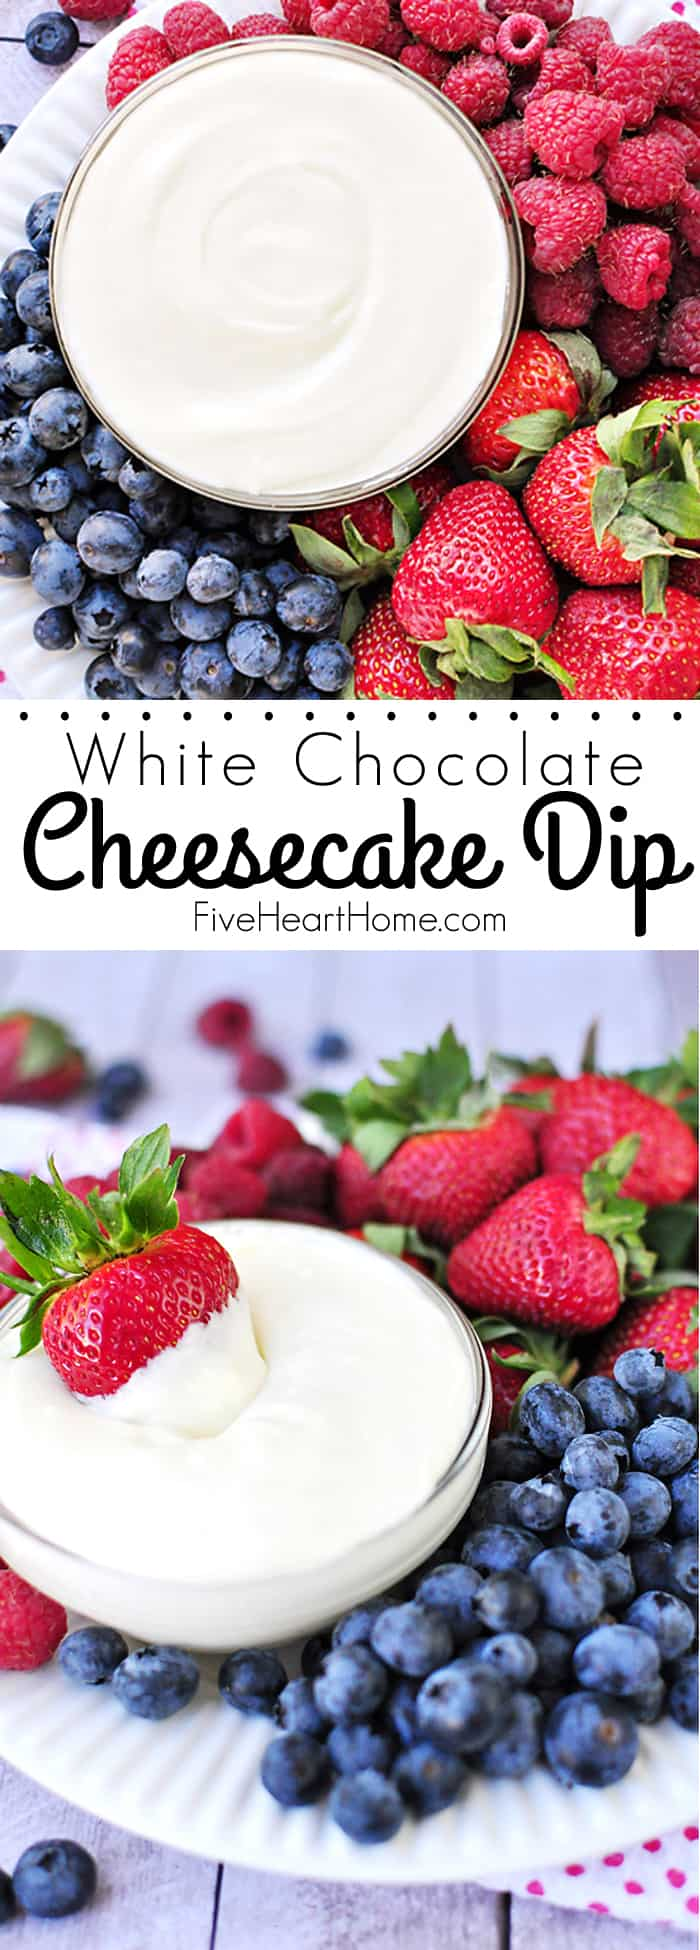 White Chocolate Cheesecake Fruit Dip Collage with Text Overlay